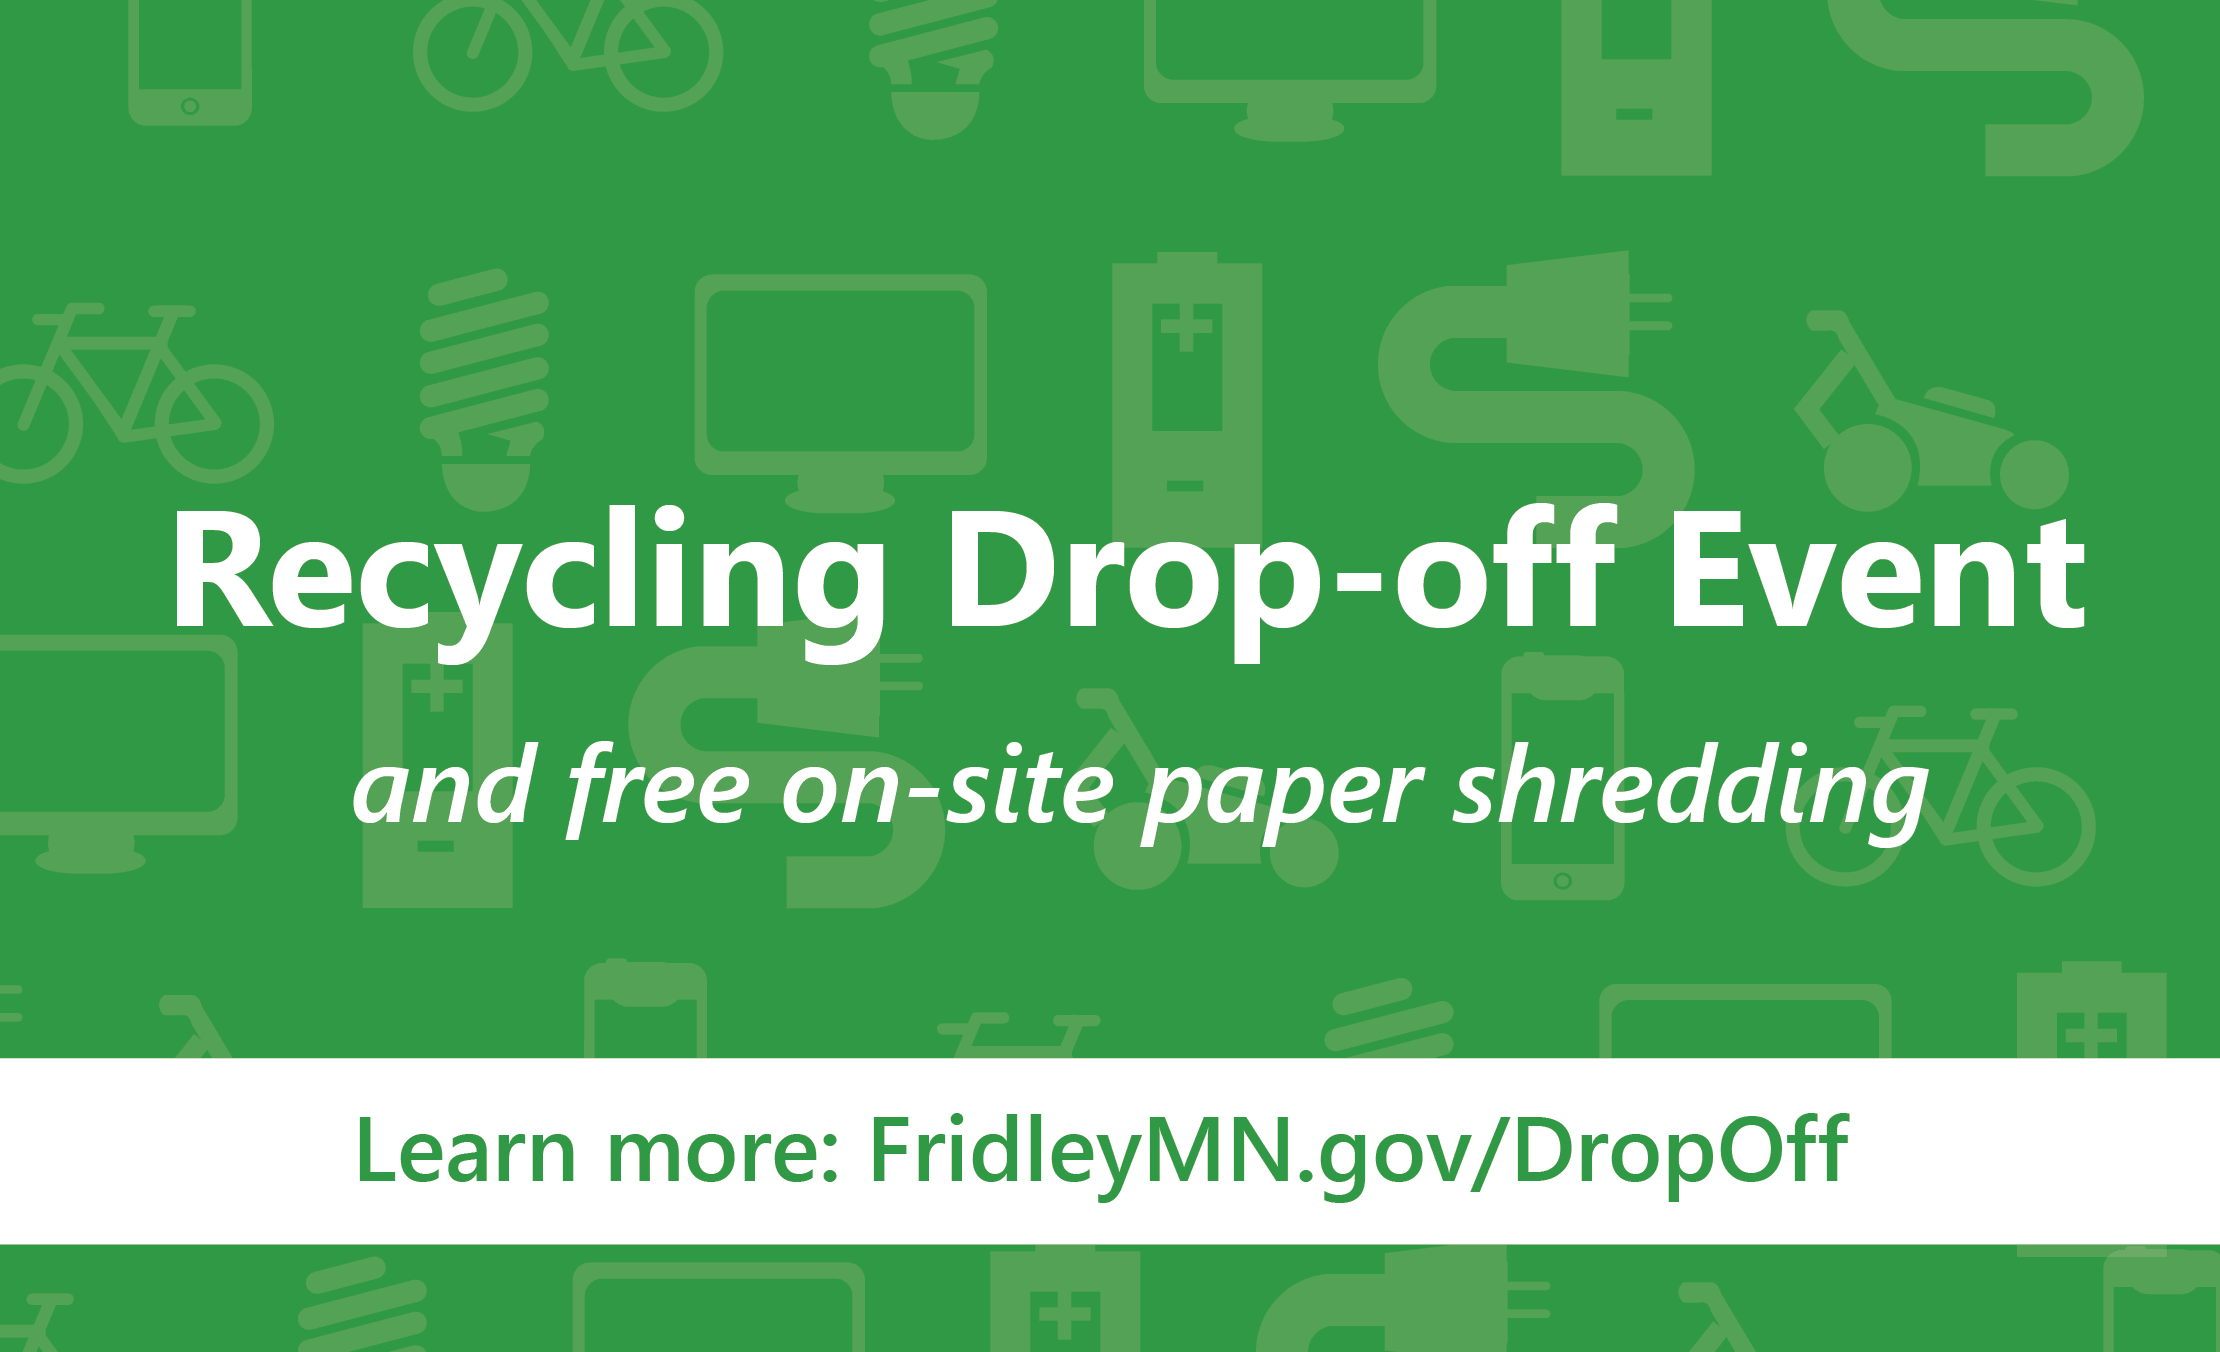 Recycling drop-off events for 2020, visit FridleyMN.gov/Dropoff to learn more